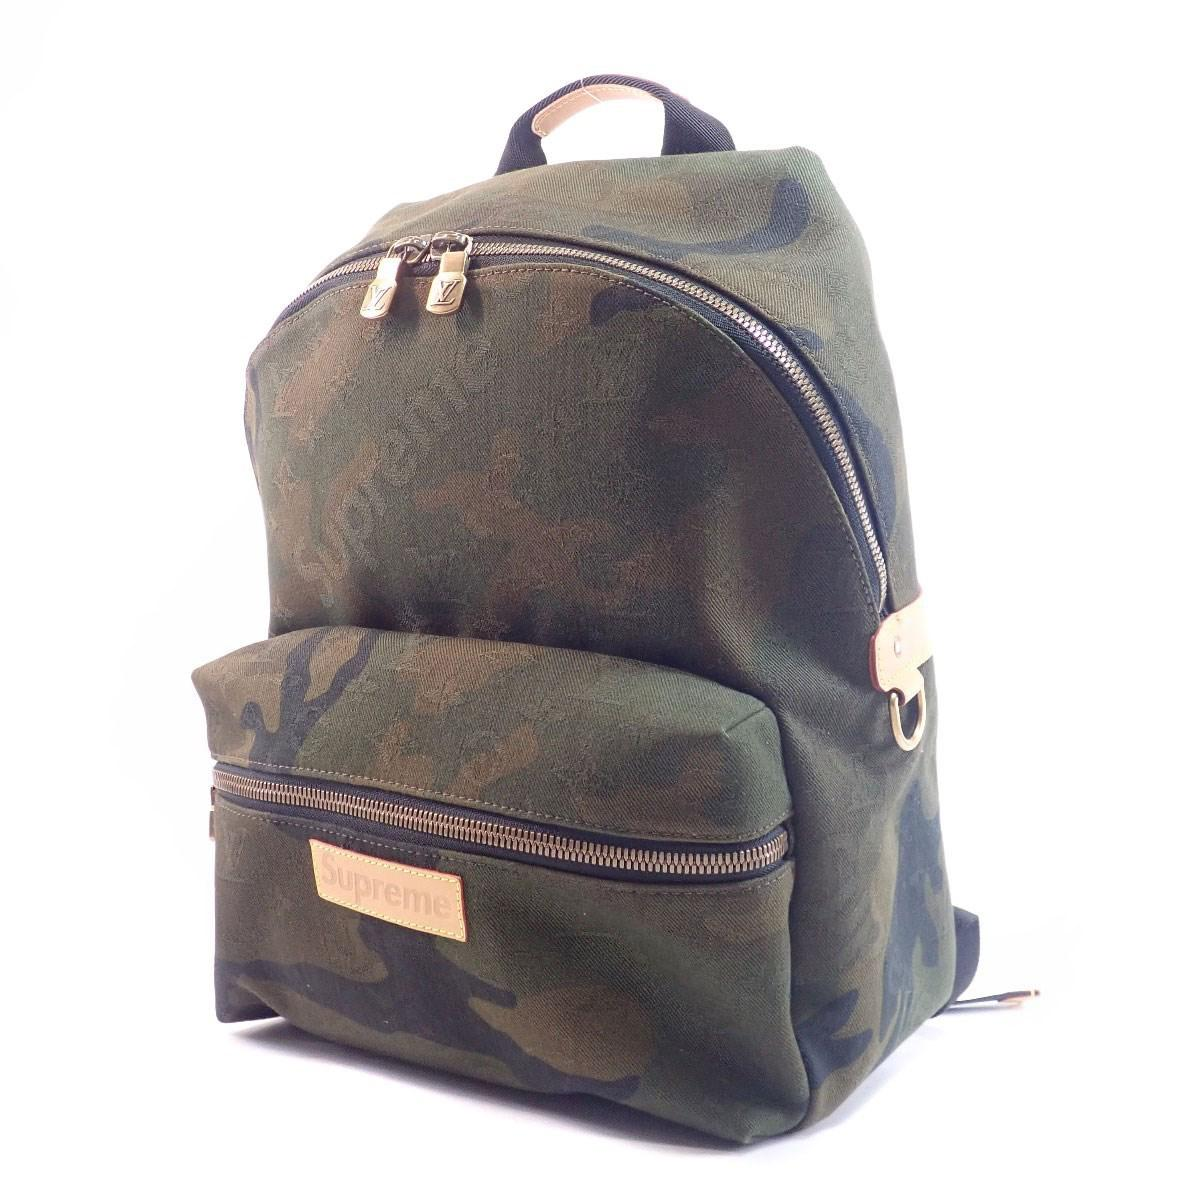 2b8ad835dea4 Lyst - Louis Vuitton Canvas Backpack · Daypack M44200 Supreme Apollo ...